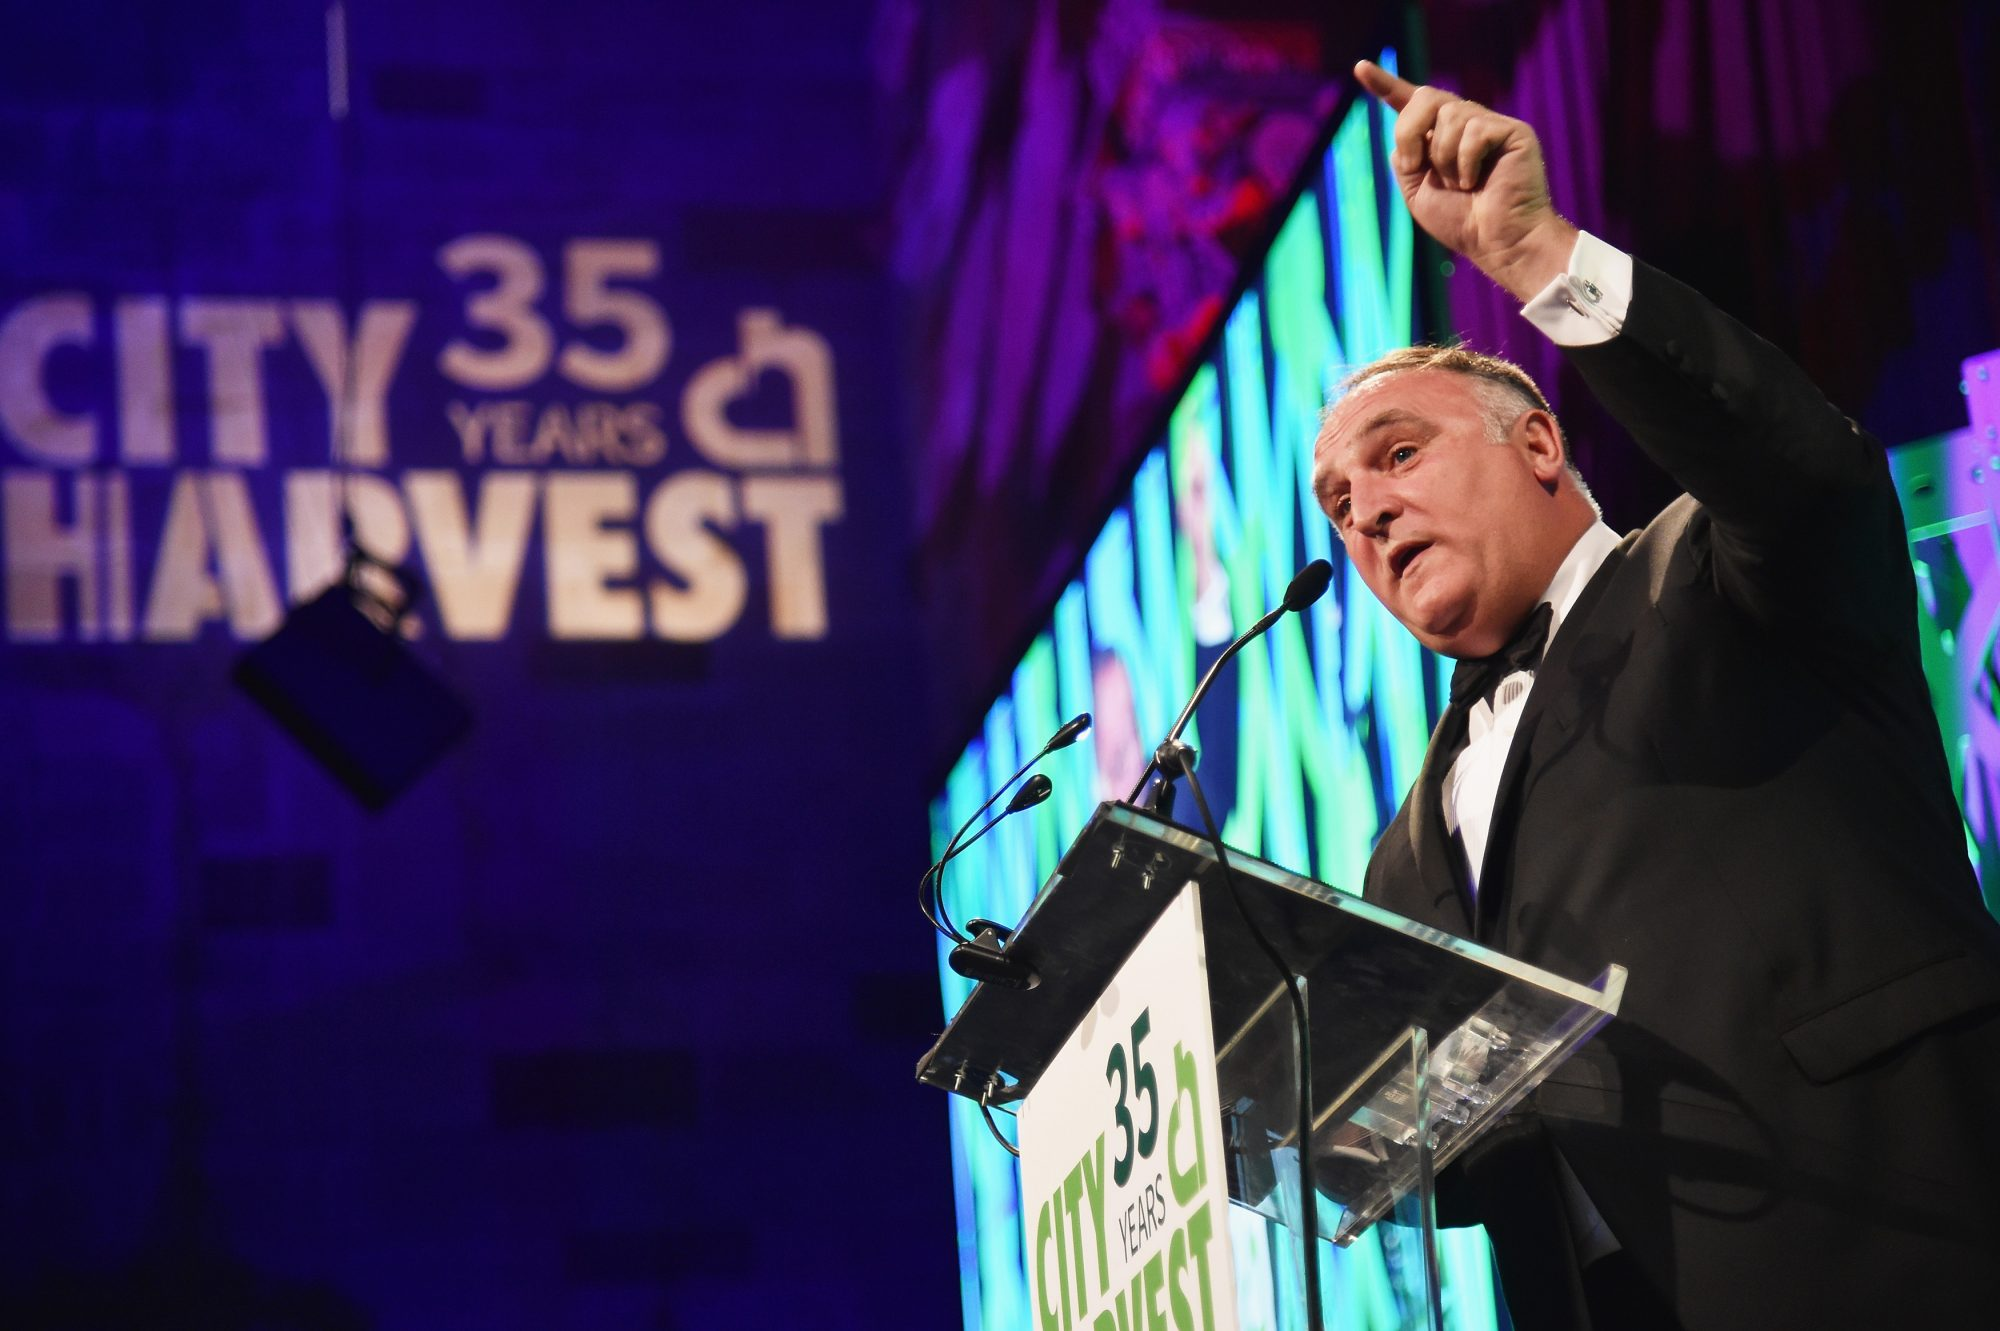 José Andrés and Chrissy Teigen Honored at City Harvest Gala